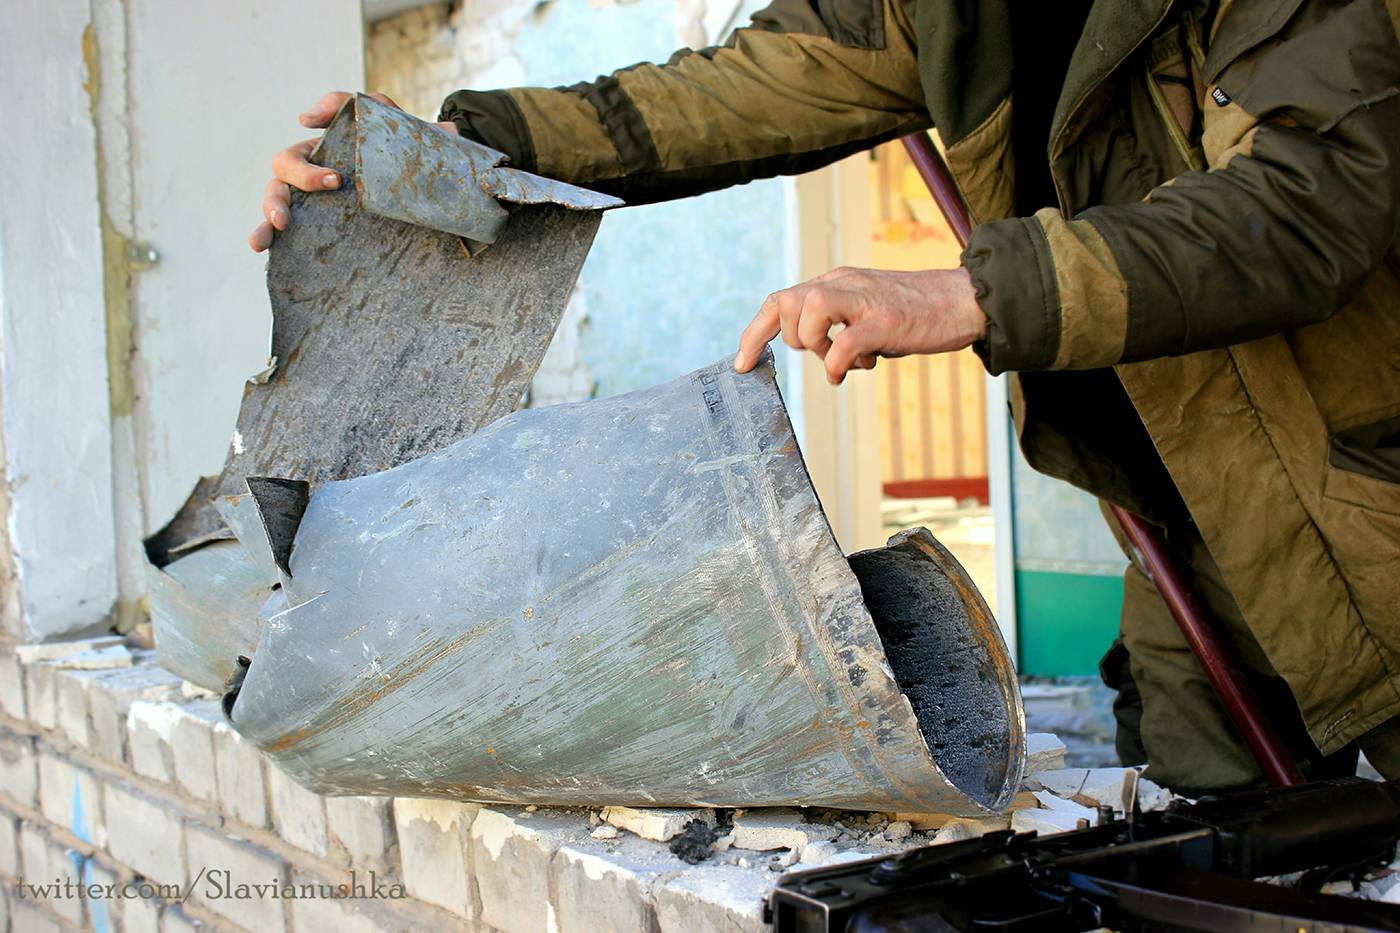 We found quite a large shell fragment, resembling a crumpled aluminium pail, inside the building, but the distinct marking number it bore proved that it was part of an Uragan missile